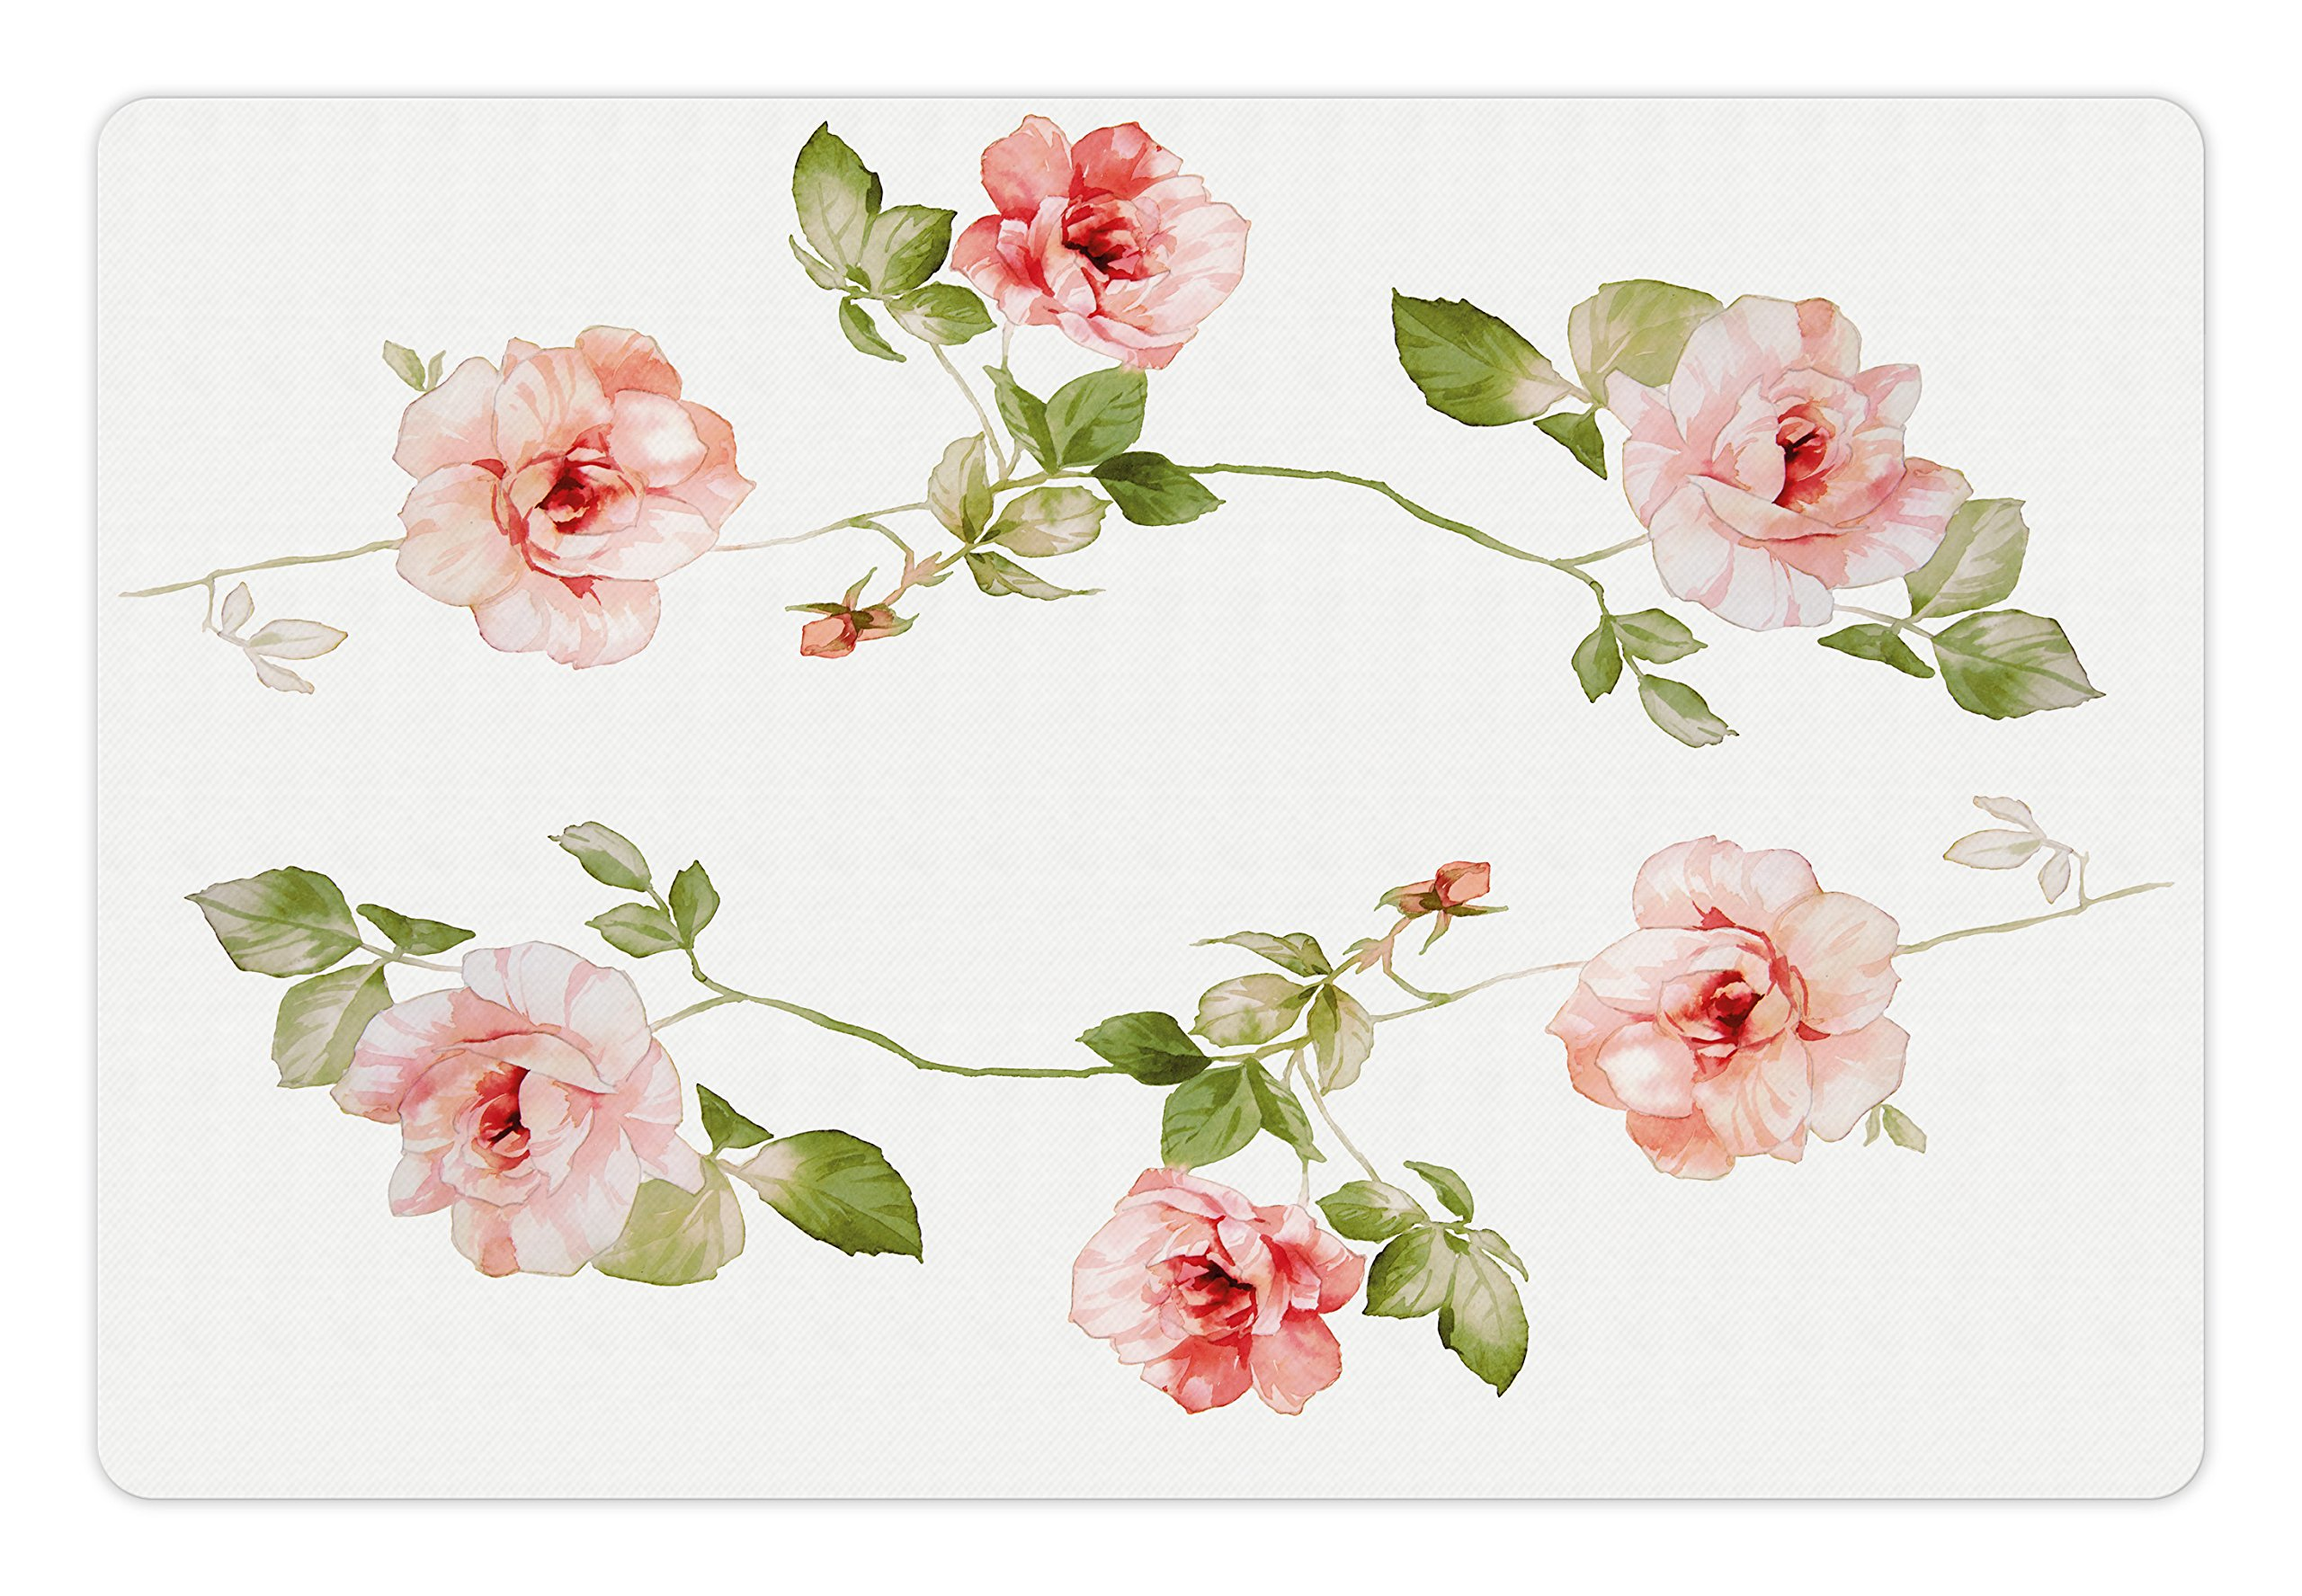 Ambesonne Floral Pet Mat for Food and Water, Romantic Rose Flower Petals Shabby Chic Kitsch Love Blooms Design, Rectangle Non-Slip Rubber Mat for Dogs and Cats, Reseda Green Peach Coral